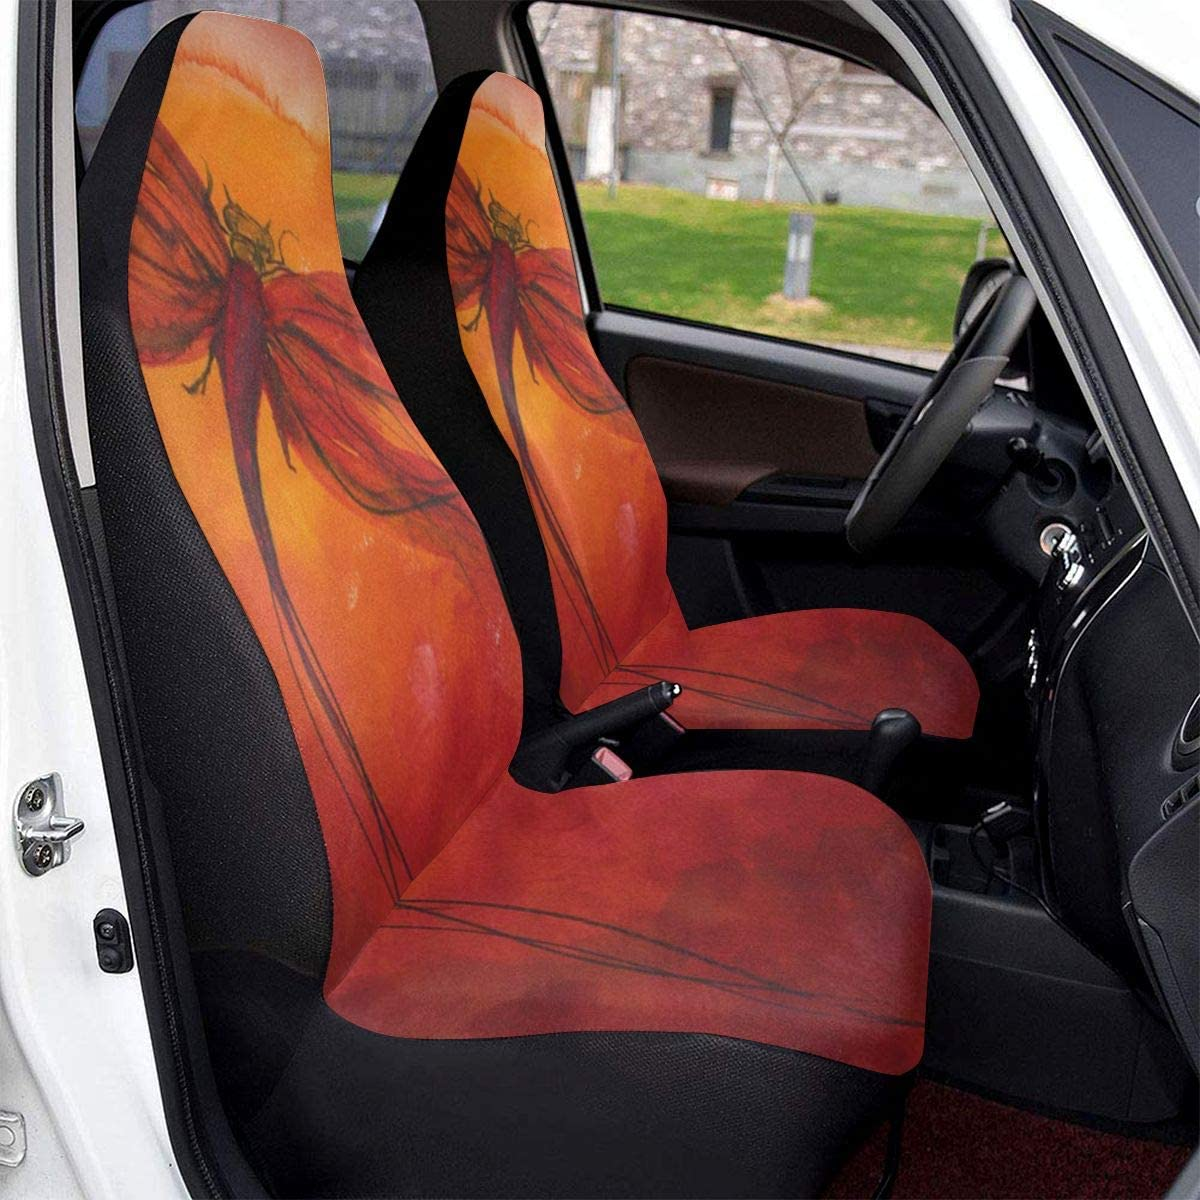 HDSTGD Car Seat Covers,Red Dragonfly Design Front Seat Covers 1pc//2 Pc,Vehicle Seat Protector Car Mat Covers,Fit Most Vehicle,Cars,Sedan,Truck,SUV Or Van